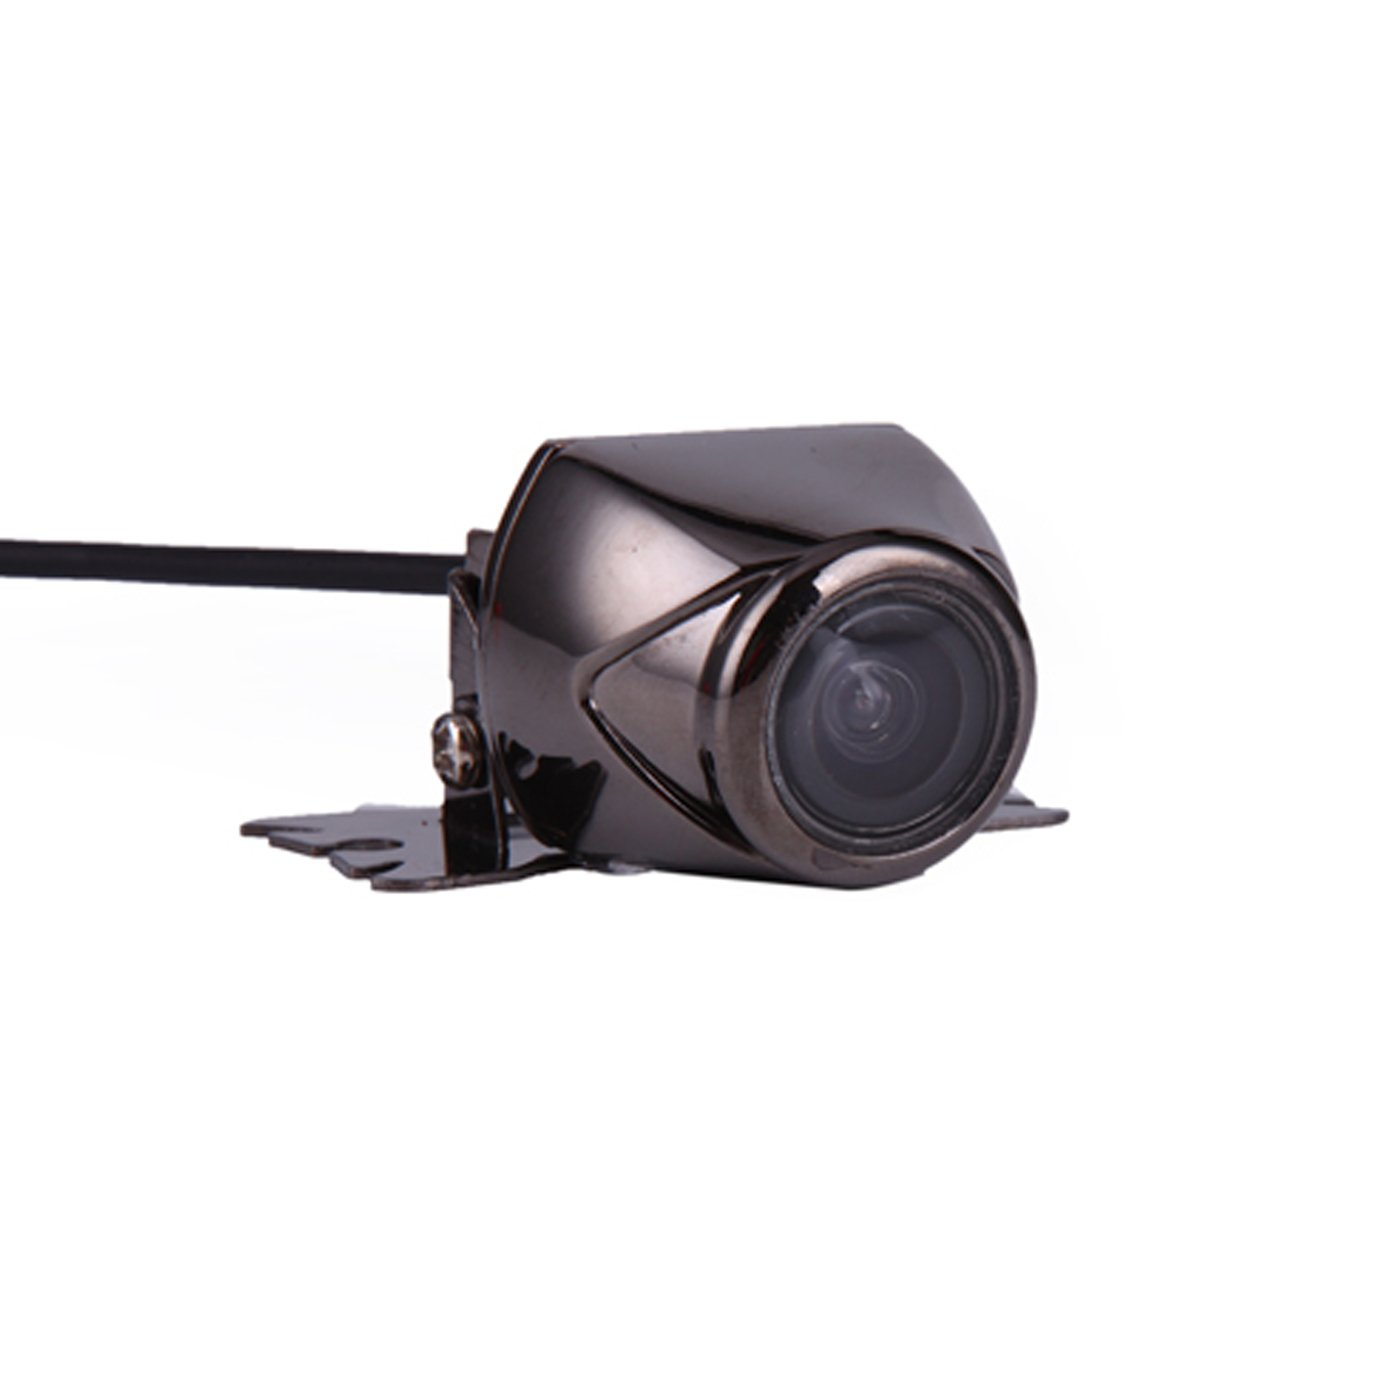 HDE E336 Backup Camera With 135 degree Viewing Angle HDE-N143